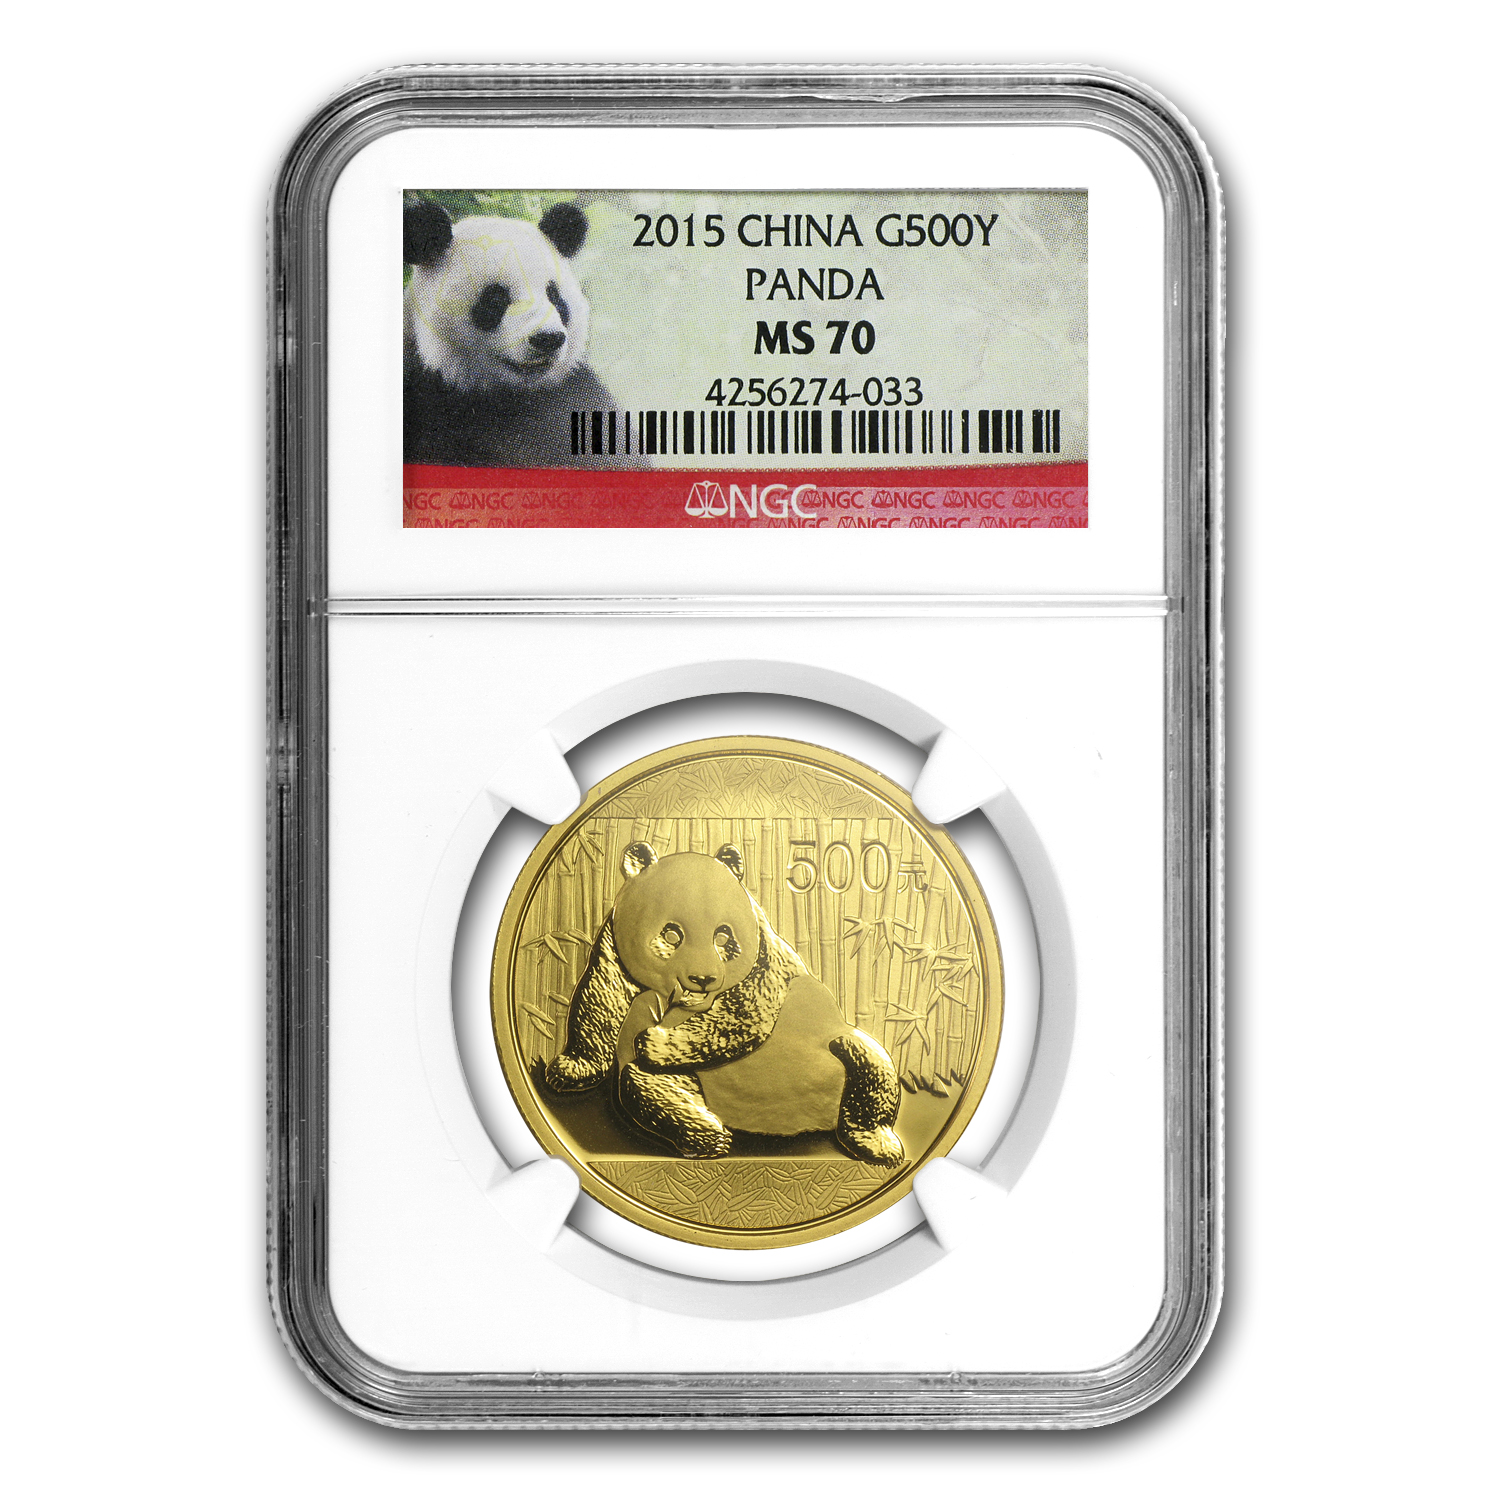 2015 China 1 oz Gold Panda MS-70 NGC